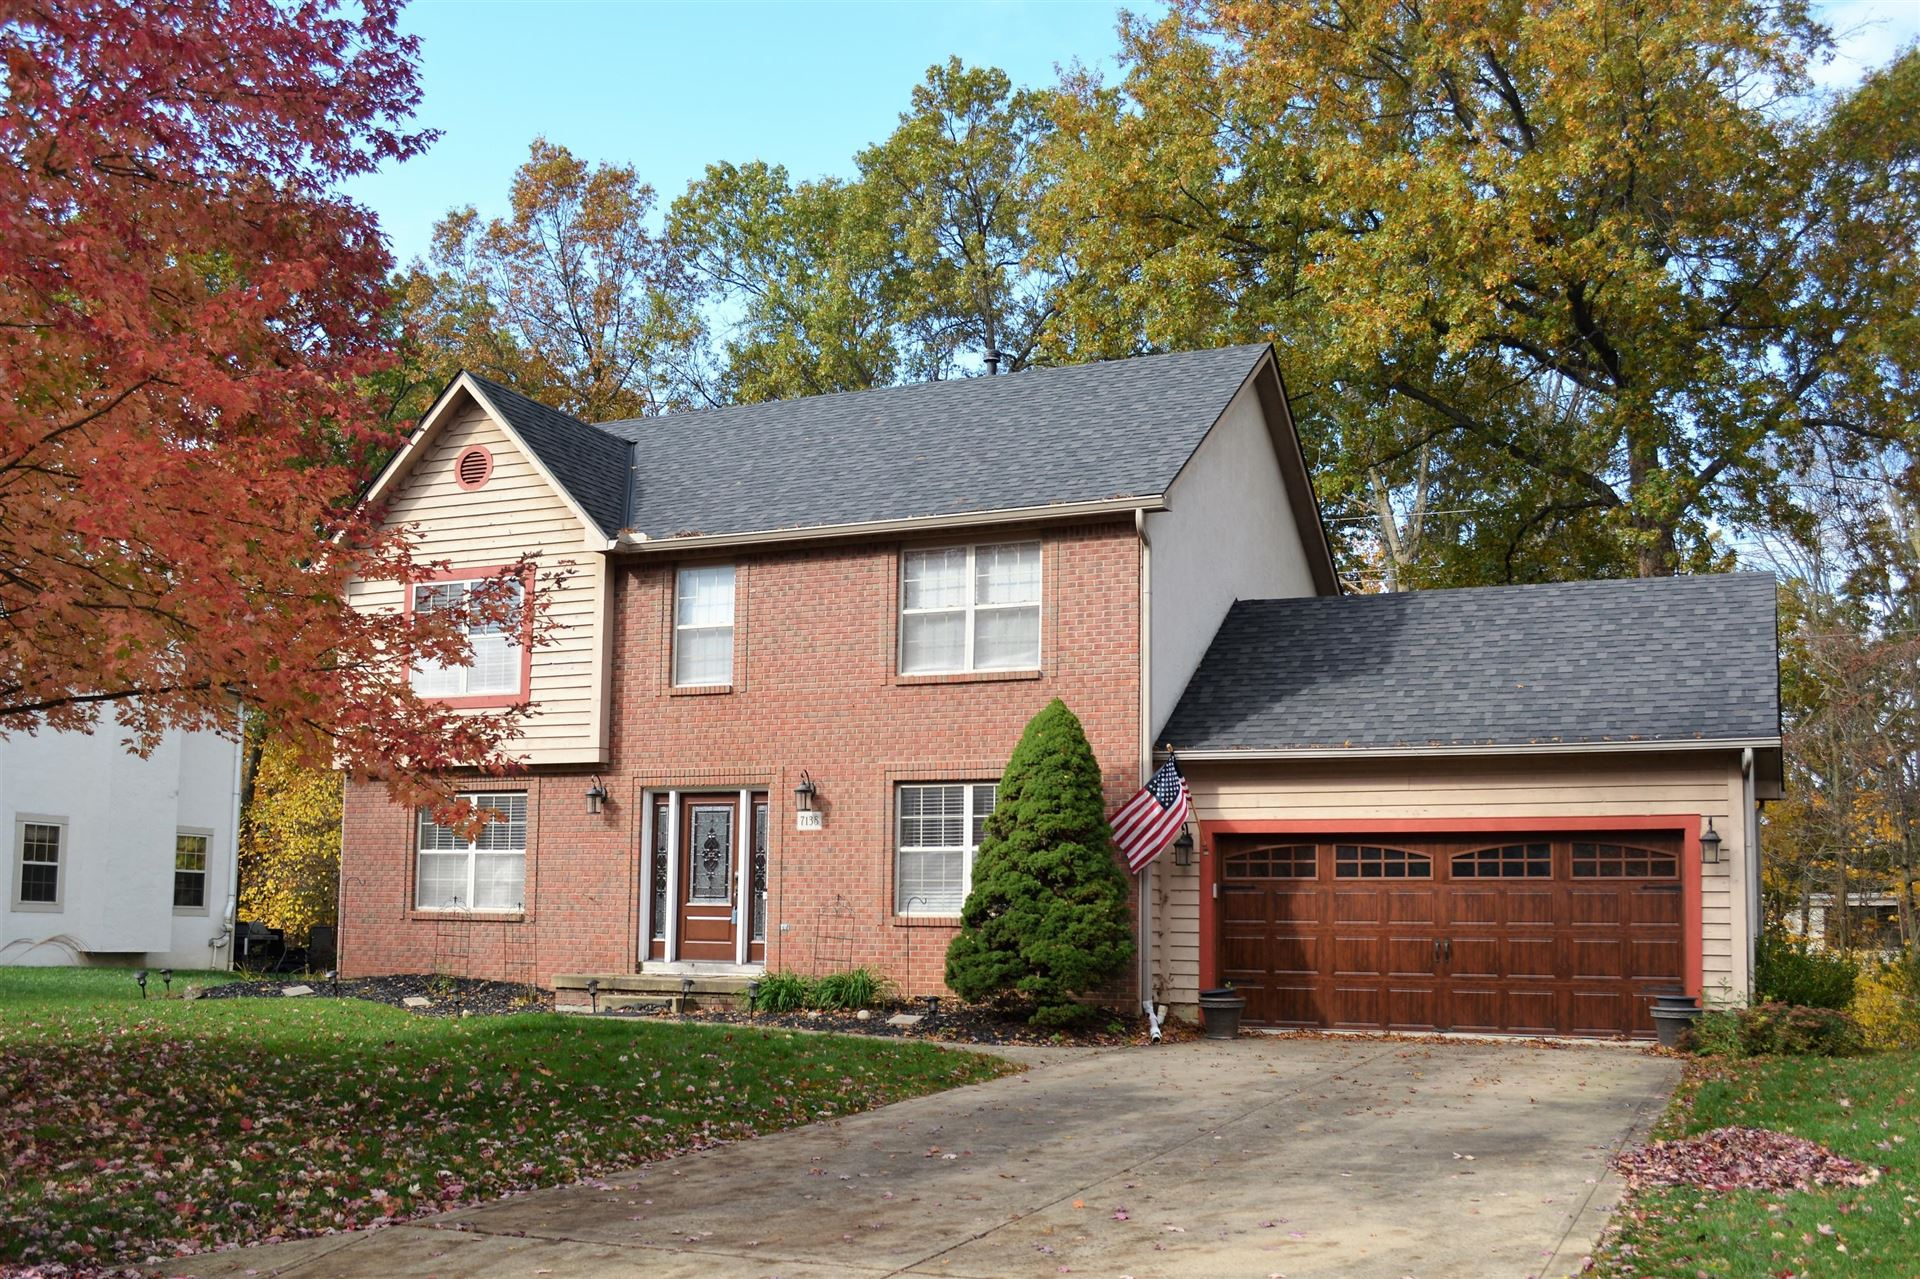 Photo of 7138 Cypress Drive, Westerville, OH 43082 (MLS # 220037857)